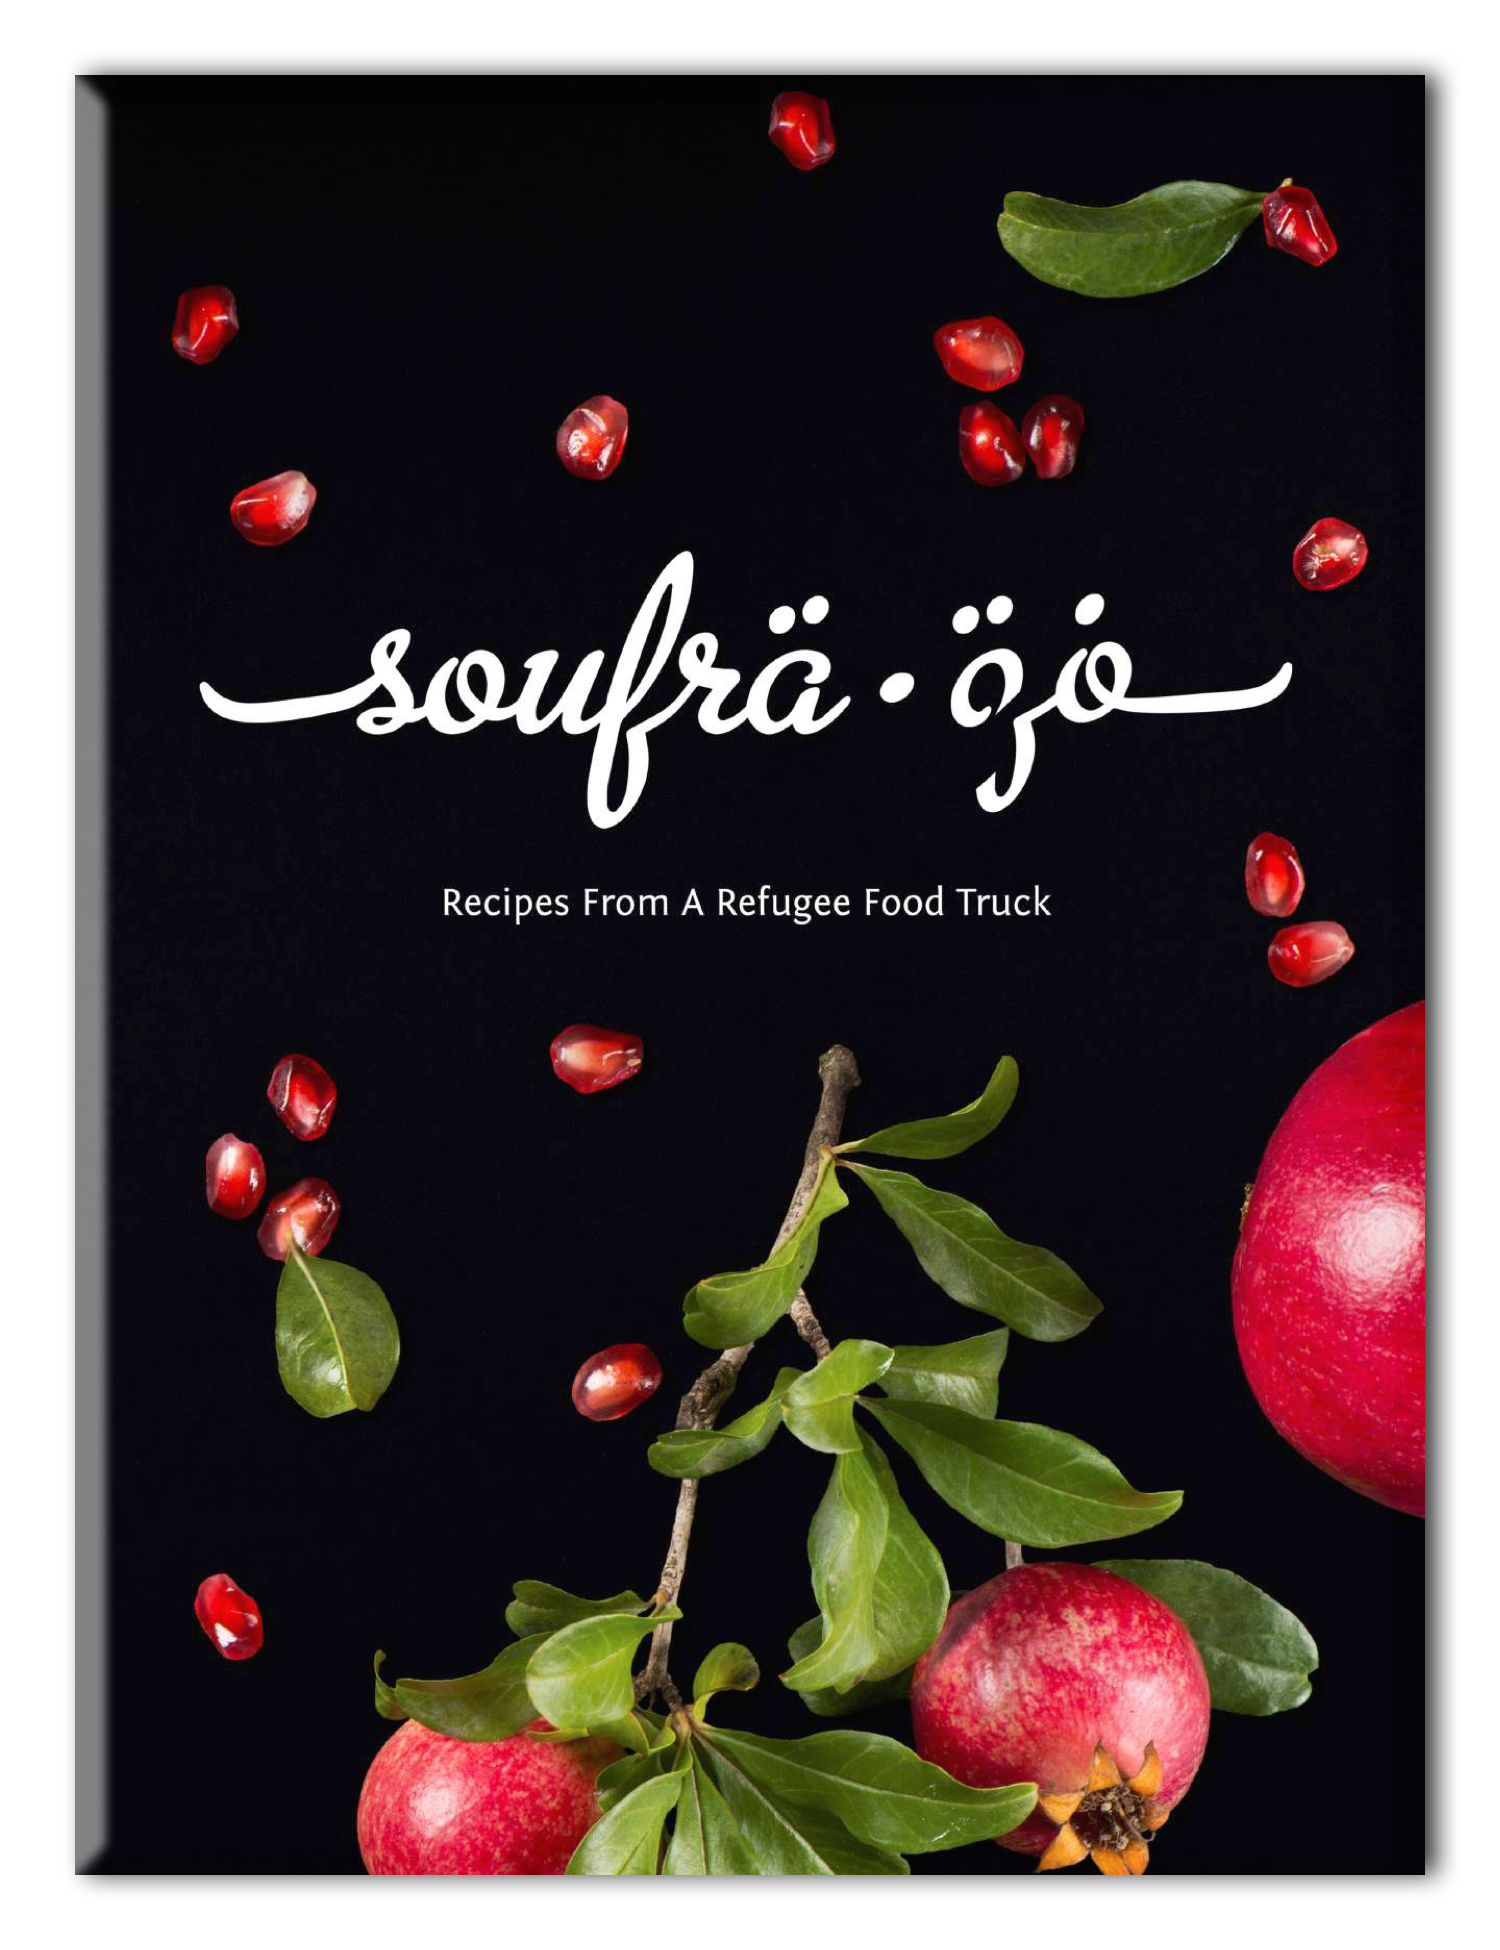 Soufra licenses and products